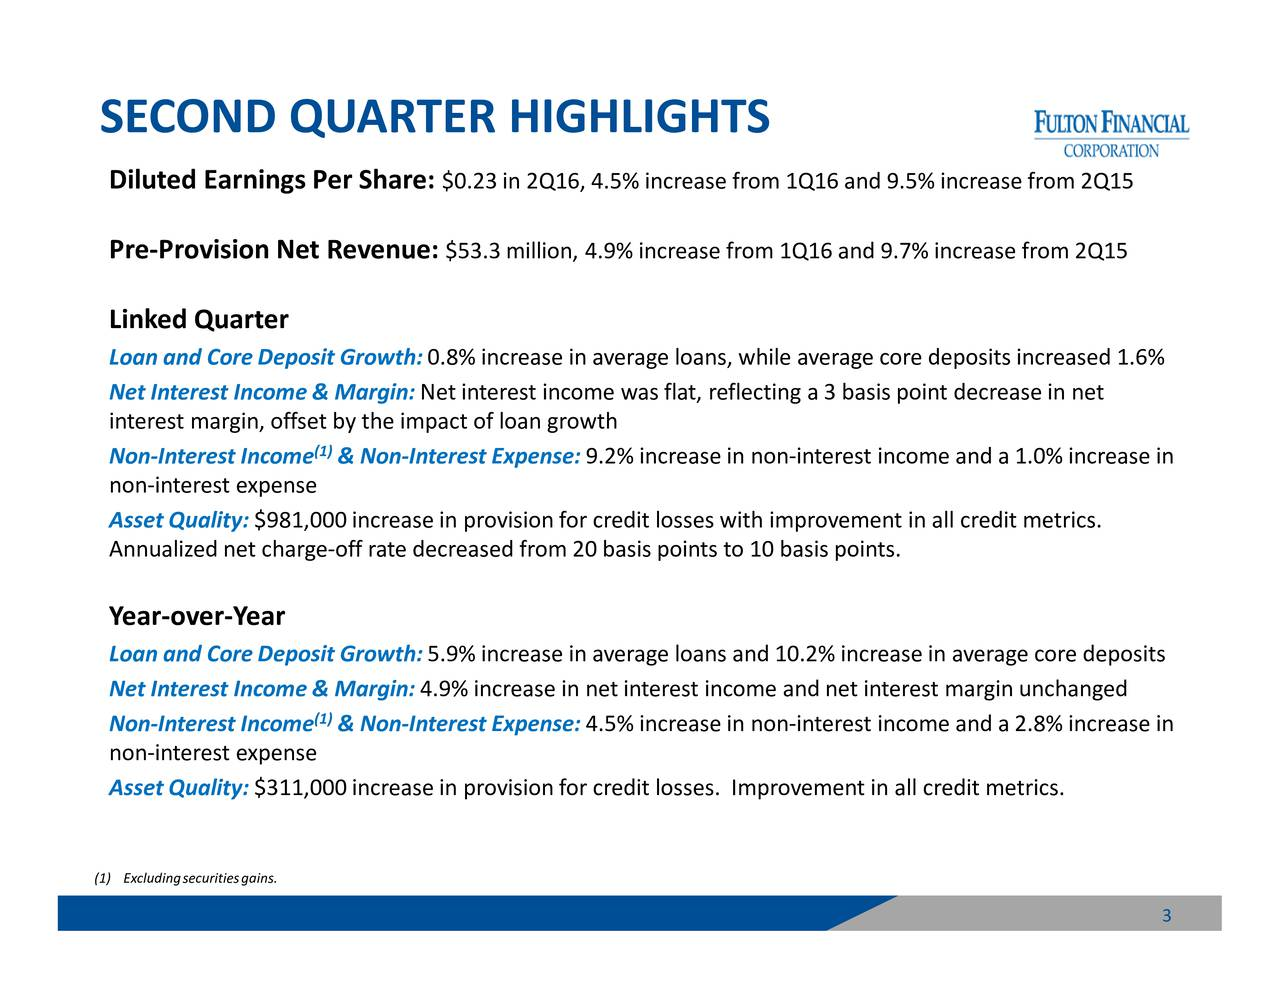 rease in rease in rease from 2Q15 rease from 2Q15 deposits increased 1.6% n ast margin unchangeds point decrease in net th improvement in all credit metrics. Improvement in all credit metrics. sis points to 10 basis points. h 9.2% increase in non-intes.i%cicreasdin1n0n%-nterest income and a 2.8% inc $0.23in 2Q16, 4.5% increase from 1Q16 and 9.5% inc.7% inc 0.8Net interest income was fla4fl%ctngra3sbasinet interest income and net intere (1)Non-Interest Expense: (1)Non-Interest Expense: $981,000increase in proviin11,rcrenitrasseiwpirovision for credit losses. SECOND QUARTER HIGHLIGHTS Neinterest marin,uflzedyneteeiaYactoffotengr(1) Excludingsecuritiesgains.